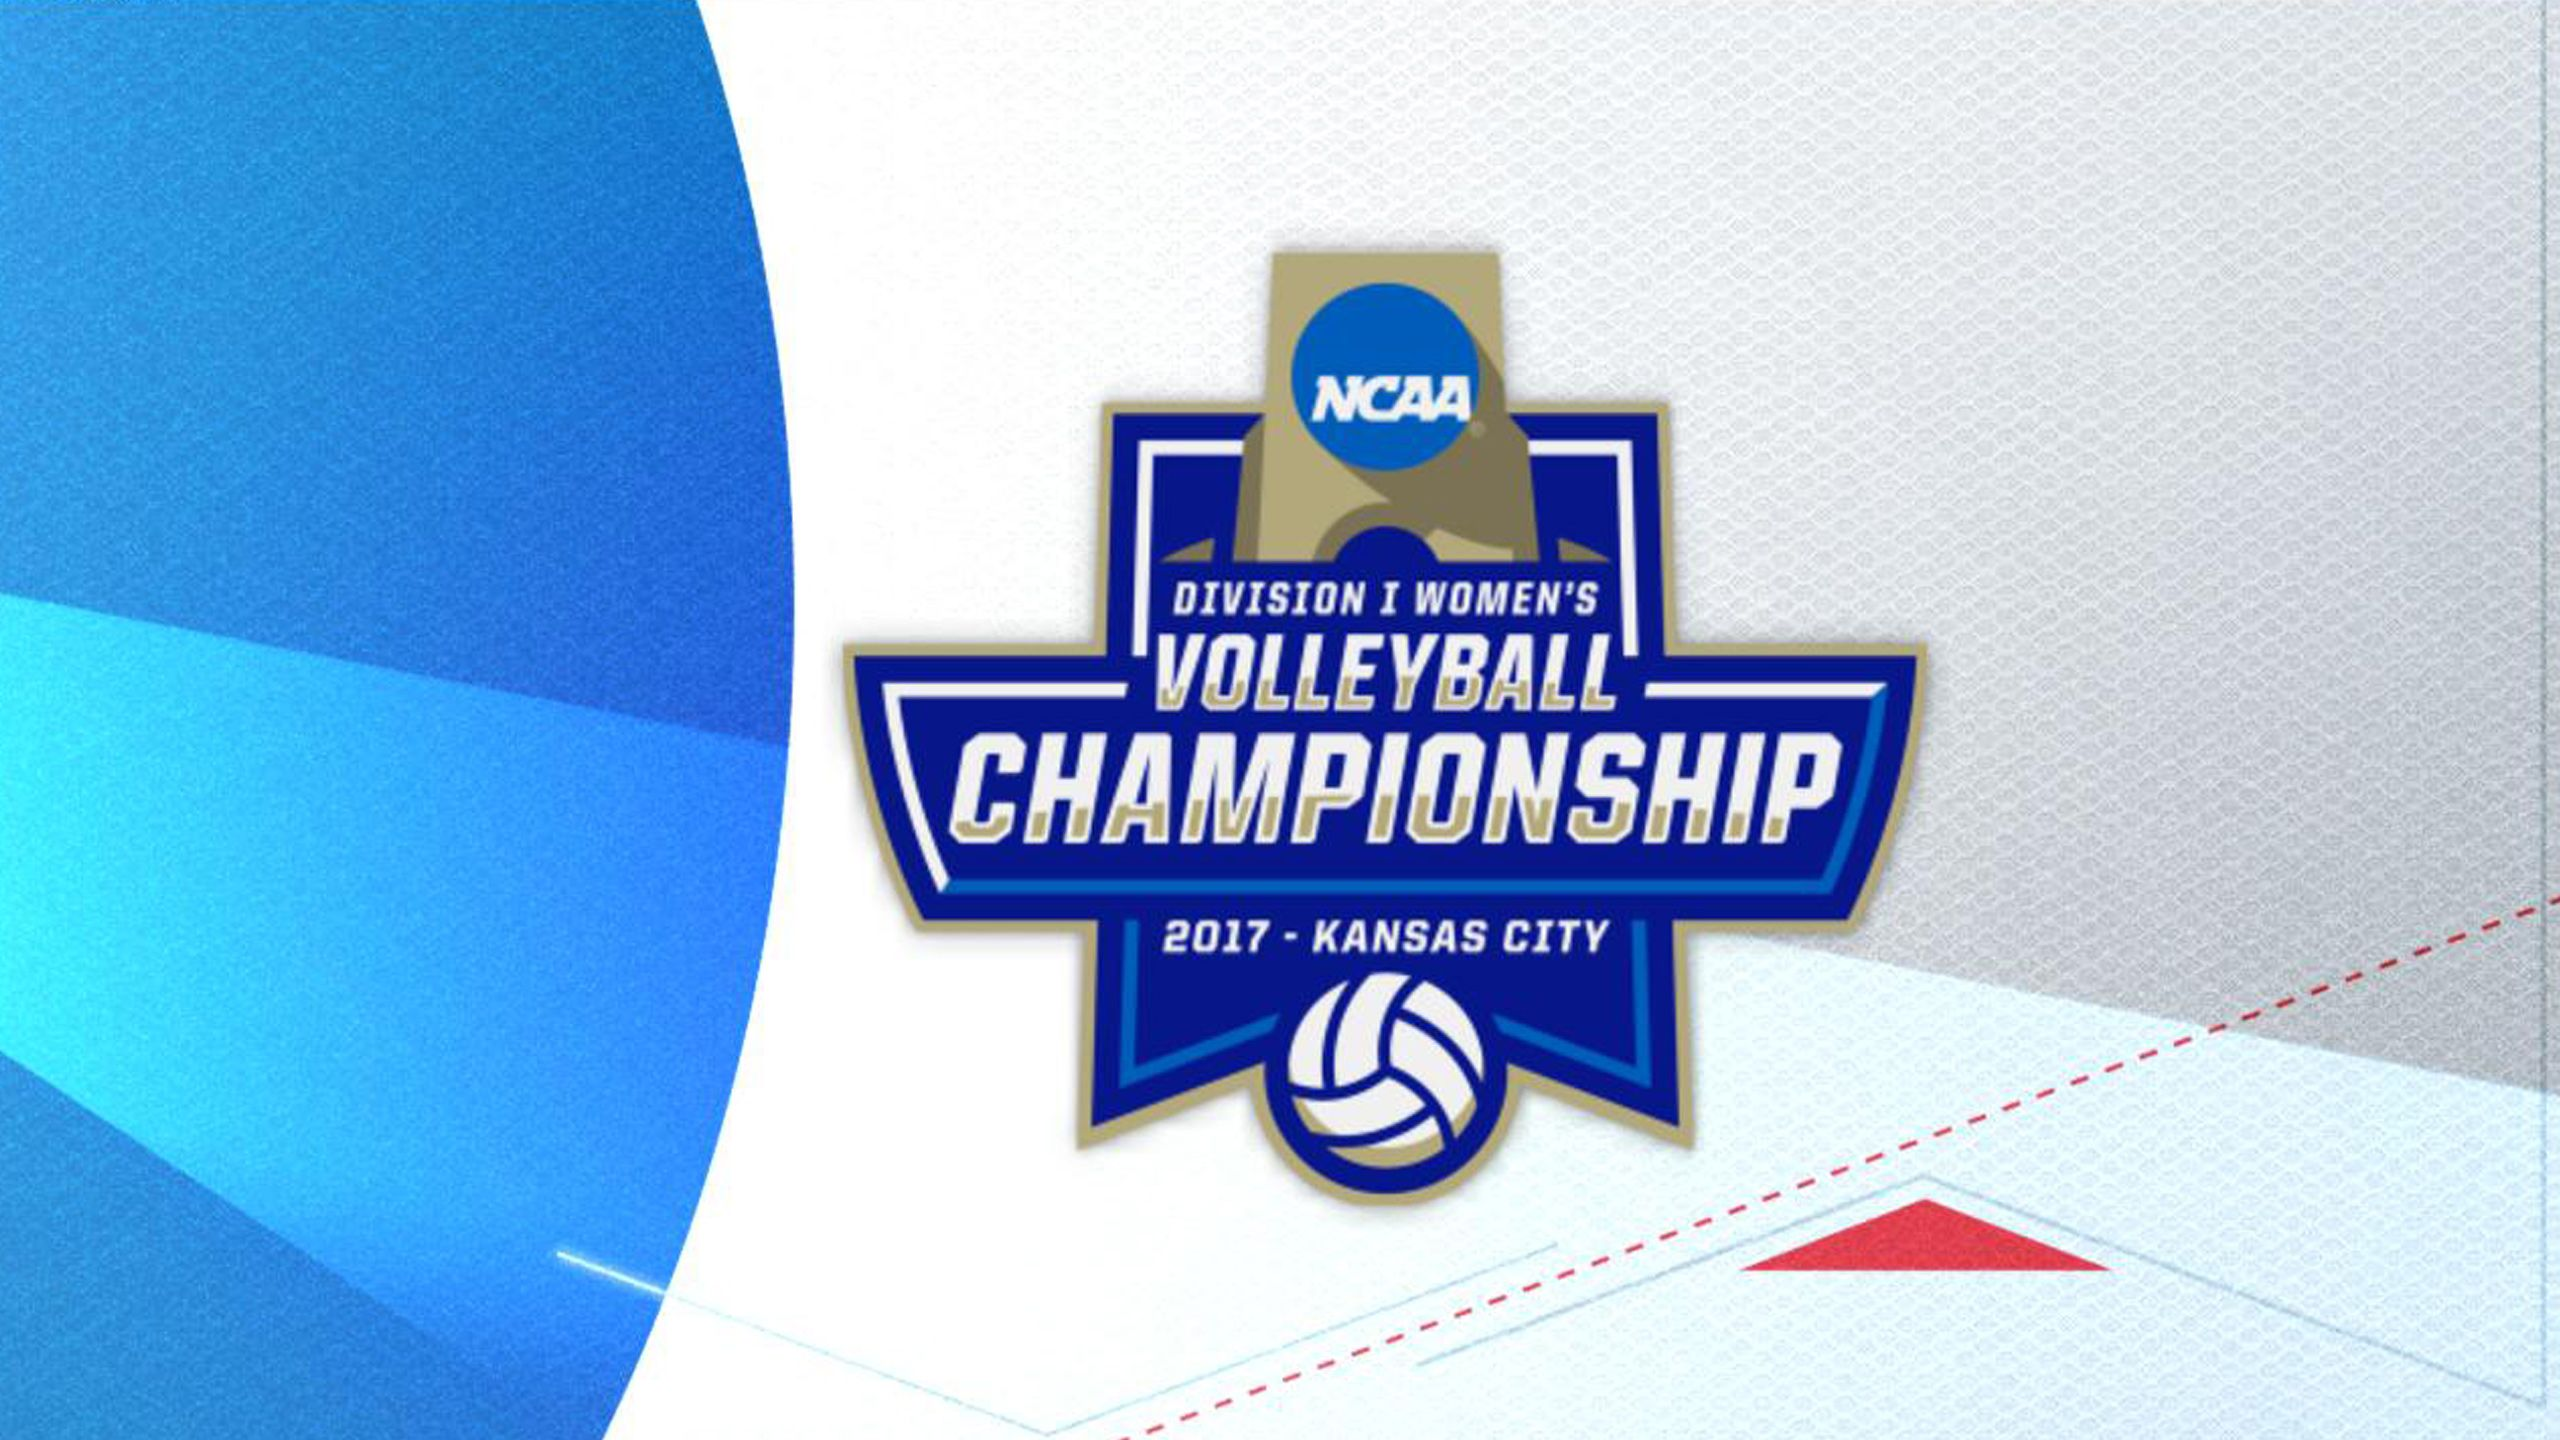 NCAA Women's Volleyball Tournament - Trophy Ceremony (Championship)